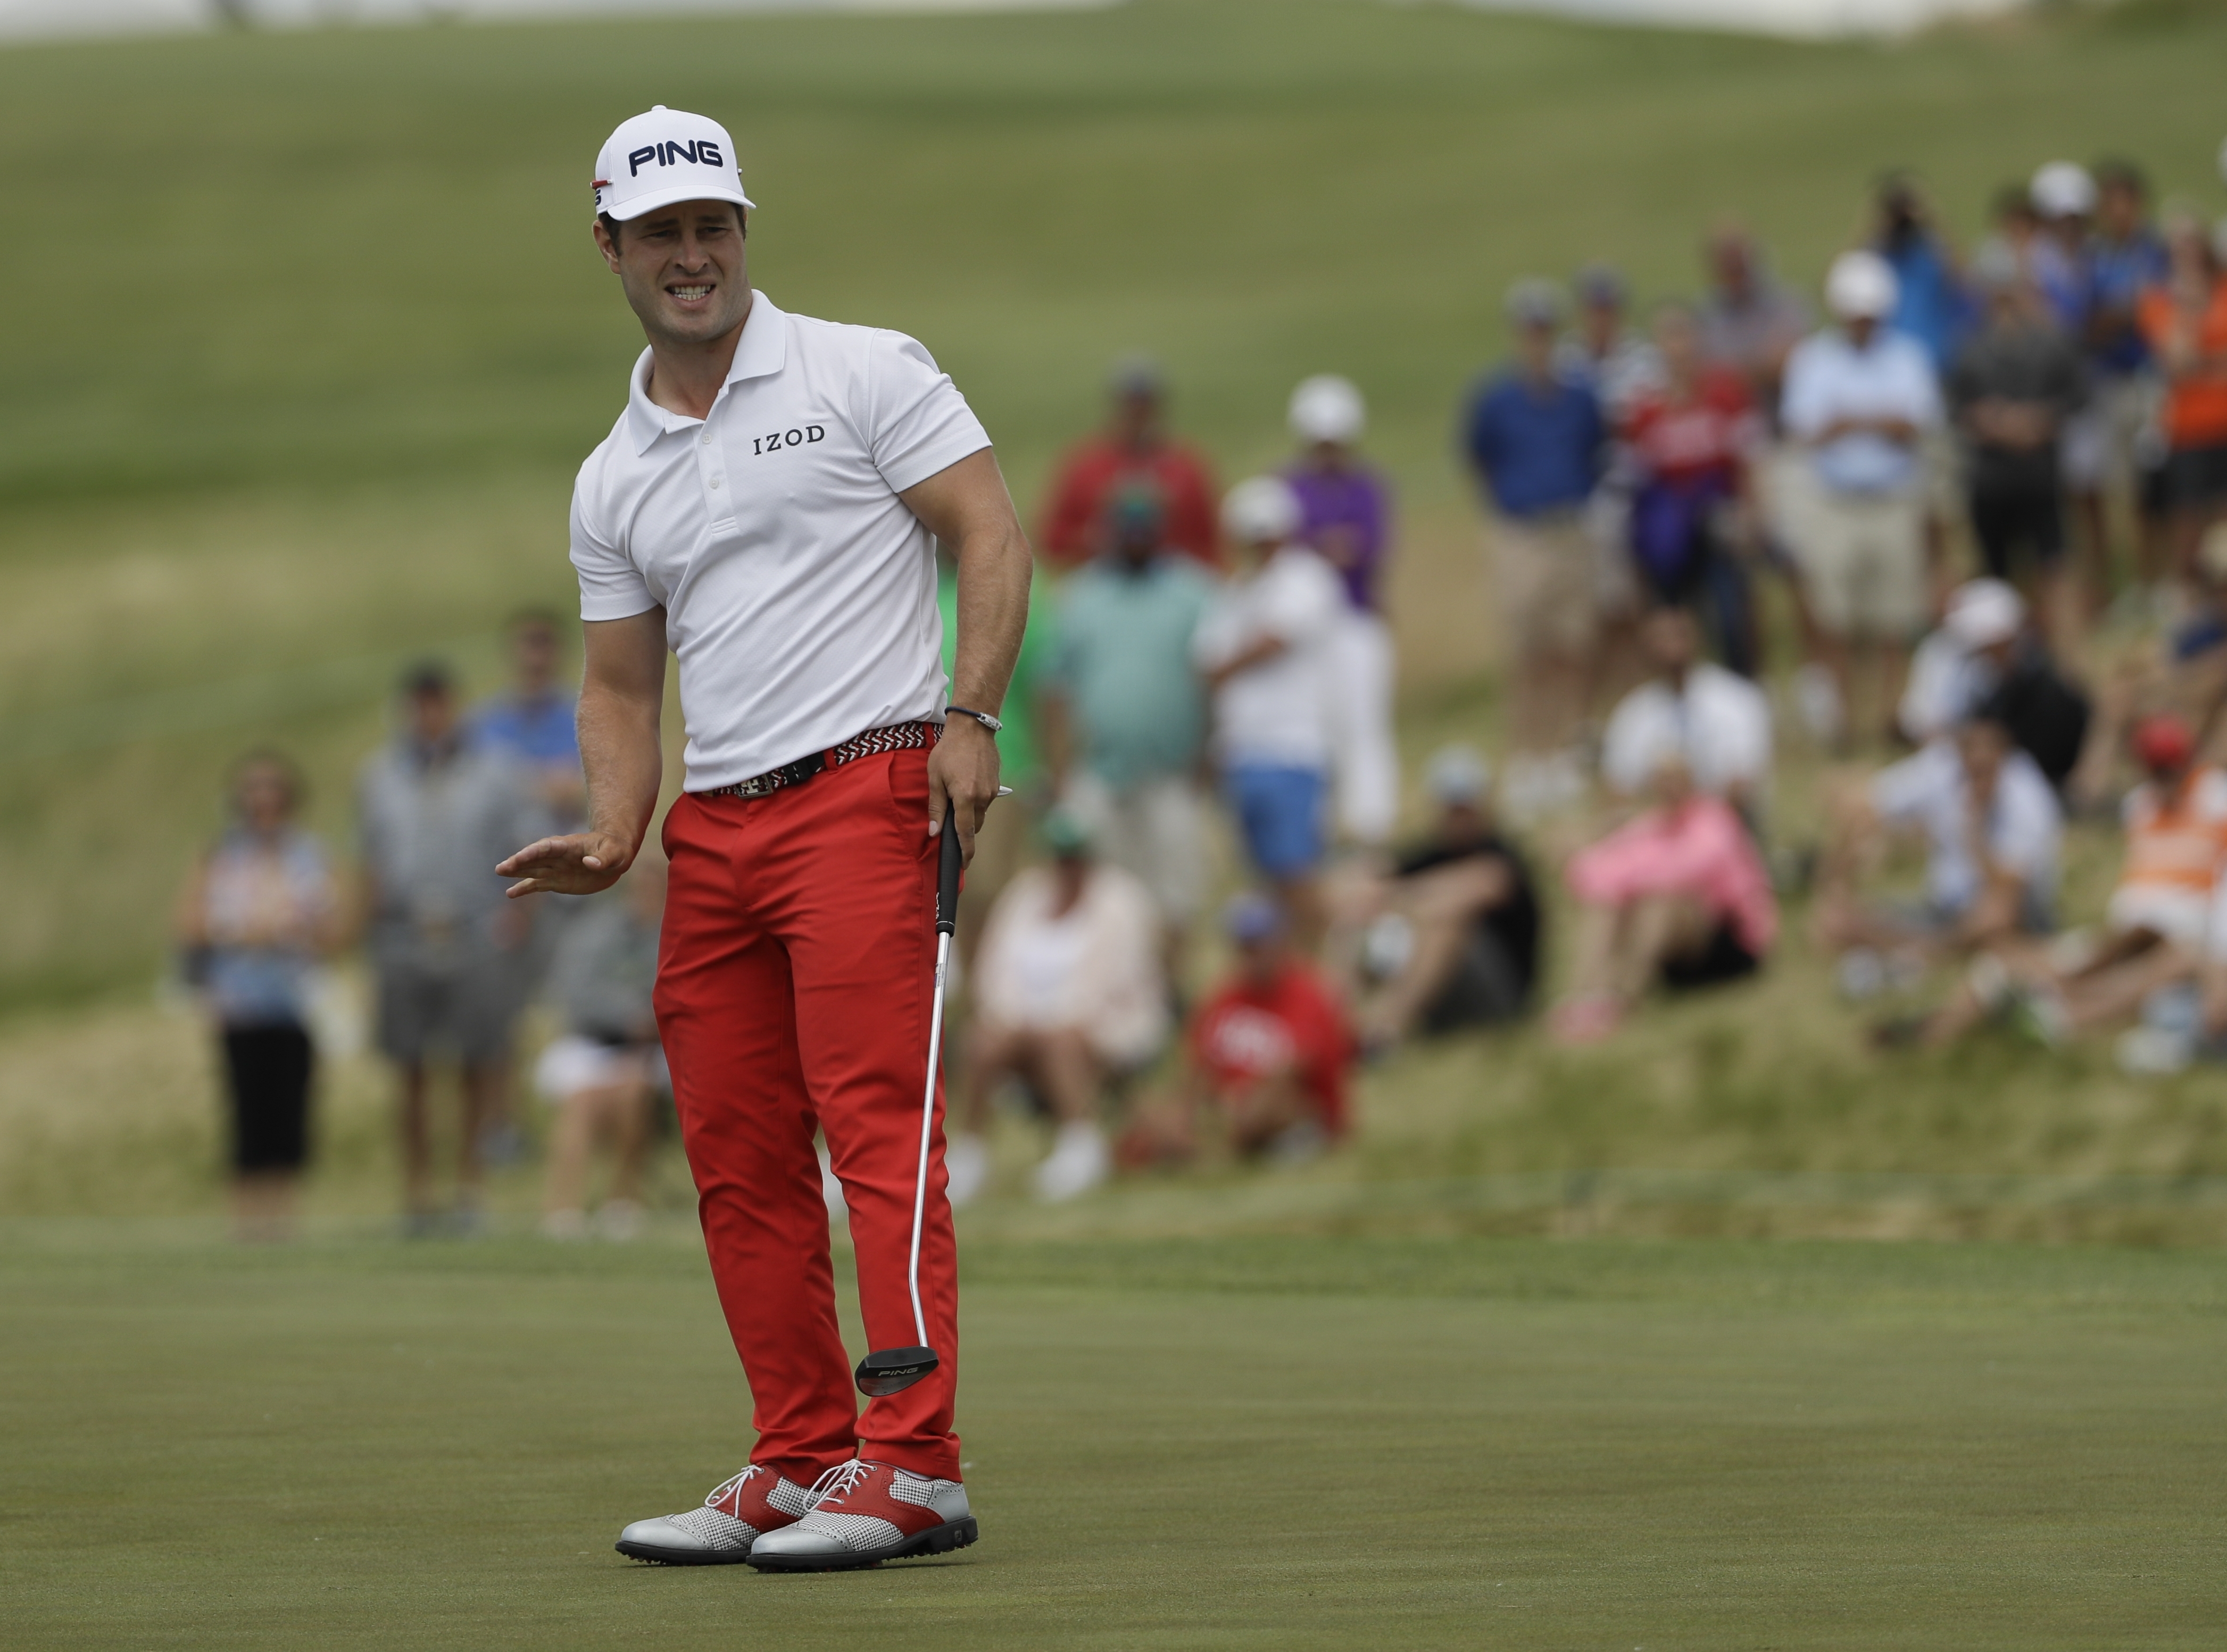 David Lingmerth, of Sweden, reacts to his putt on the ninth hole during the fourth round of the U.S. Open golf tournament Sunday, June 18, 2017, at Erin Hills in Erin, Wis. (AP Photo/David J. Phillip)